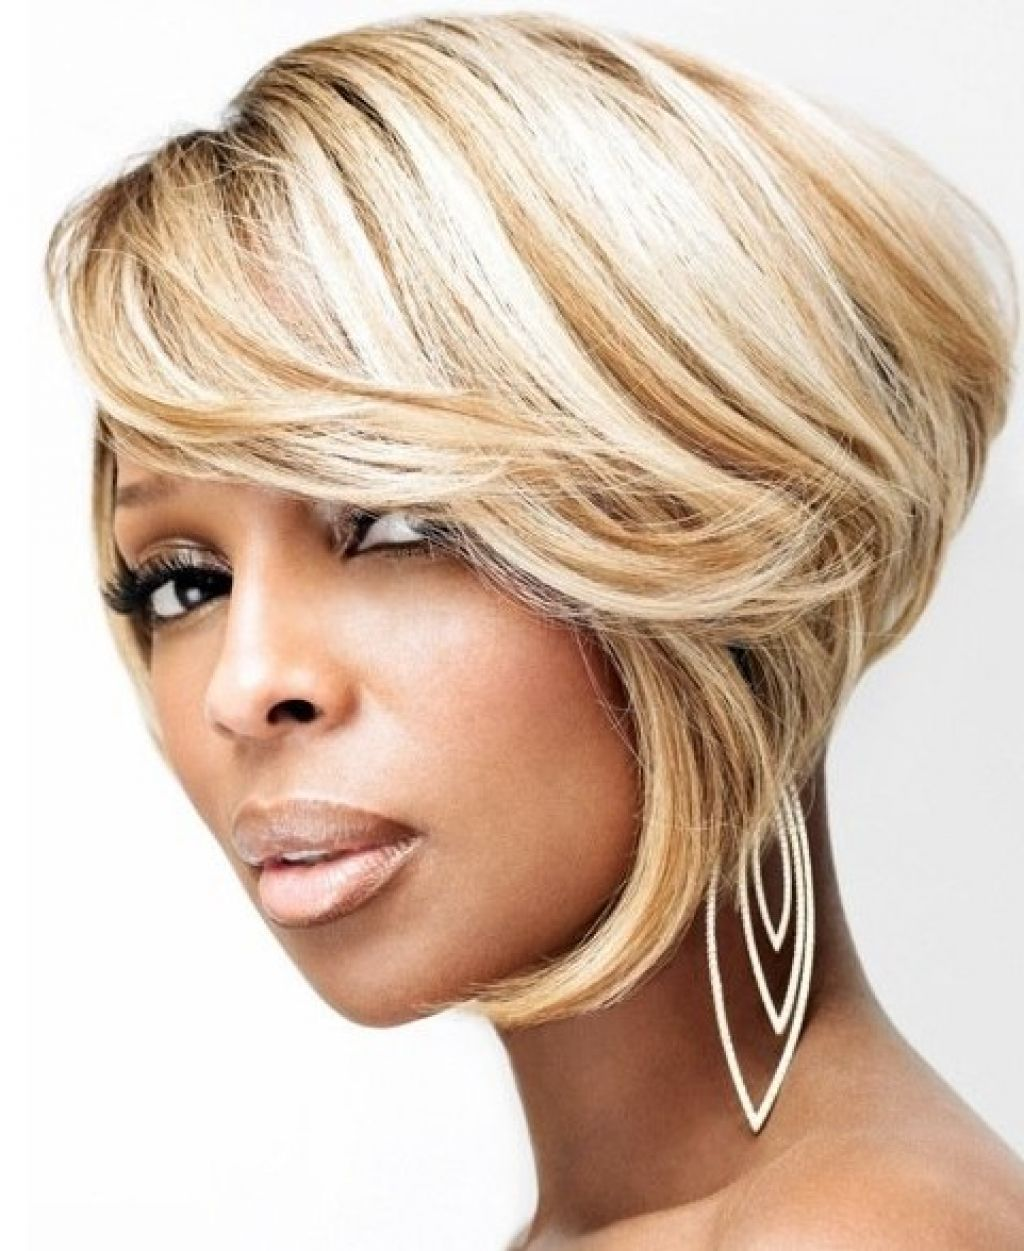 Mary J Blige Hairstyles Short Hair Bob Life Pinterest